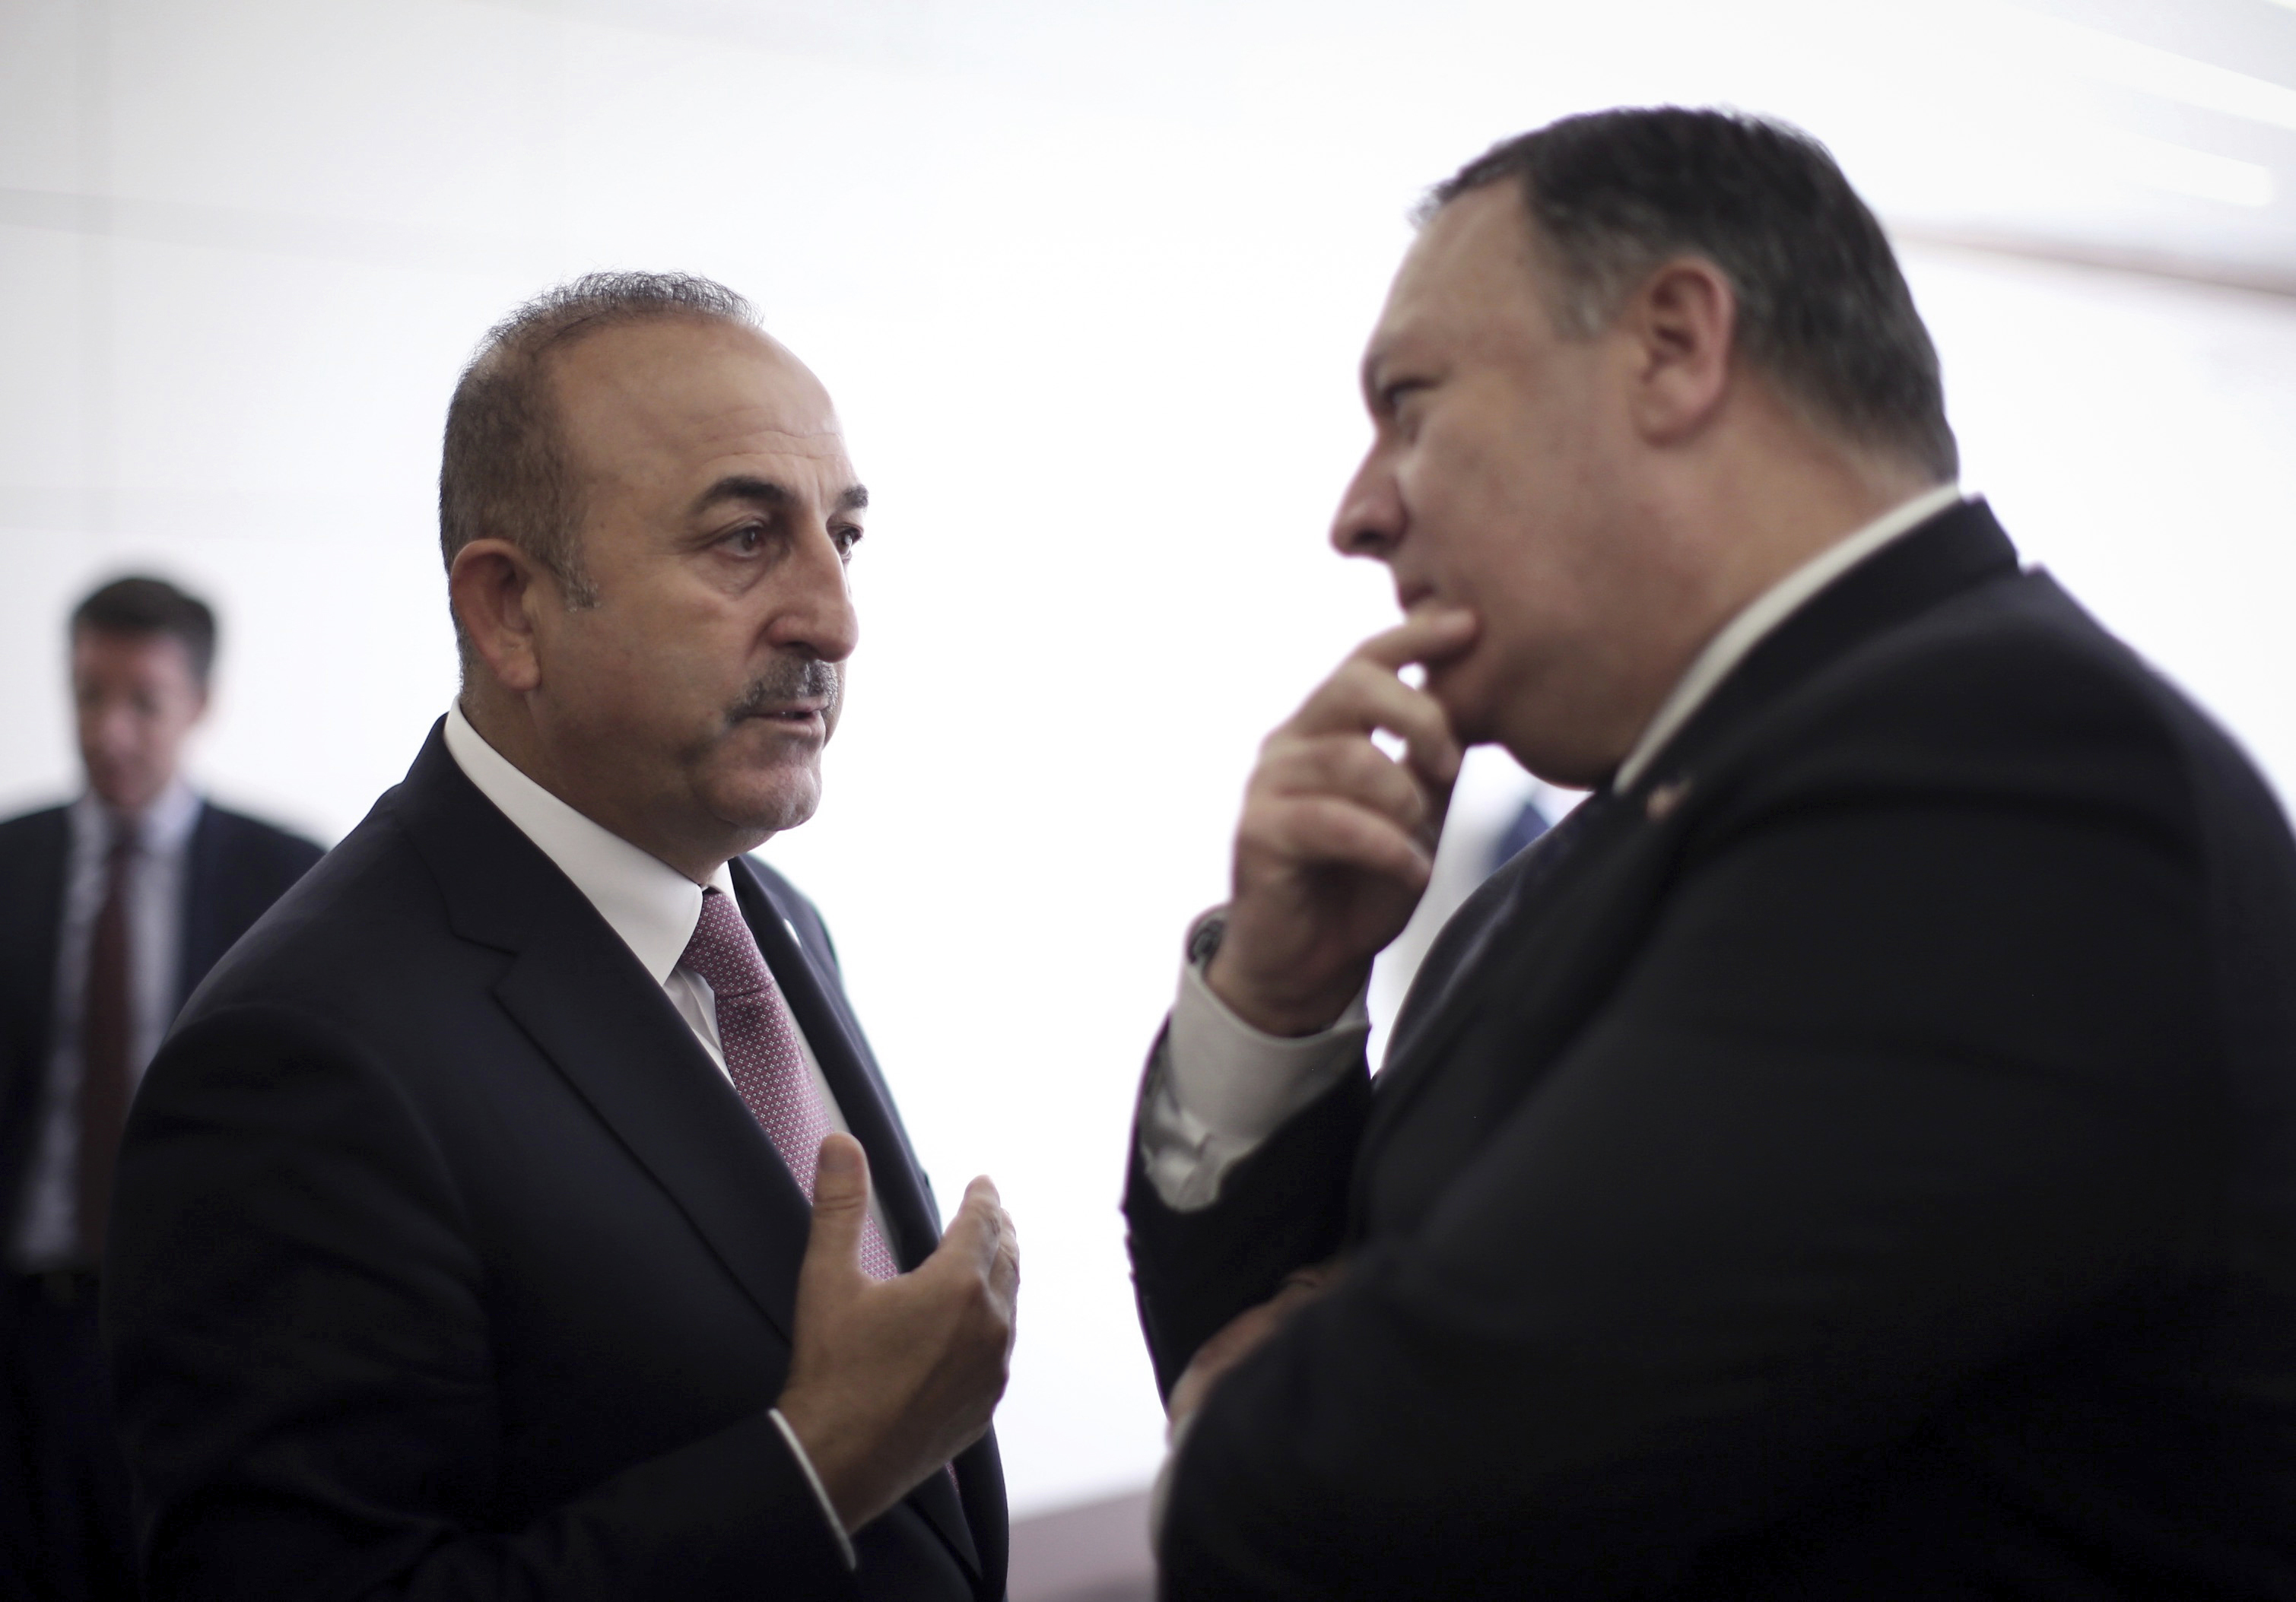 Turkish Foreign Minister Mevlut Cavusoglu, pictured left, talks with US Secretary of State Mike Pompeo in Ankara, Turkey, on Wednesday.